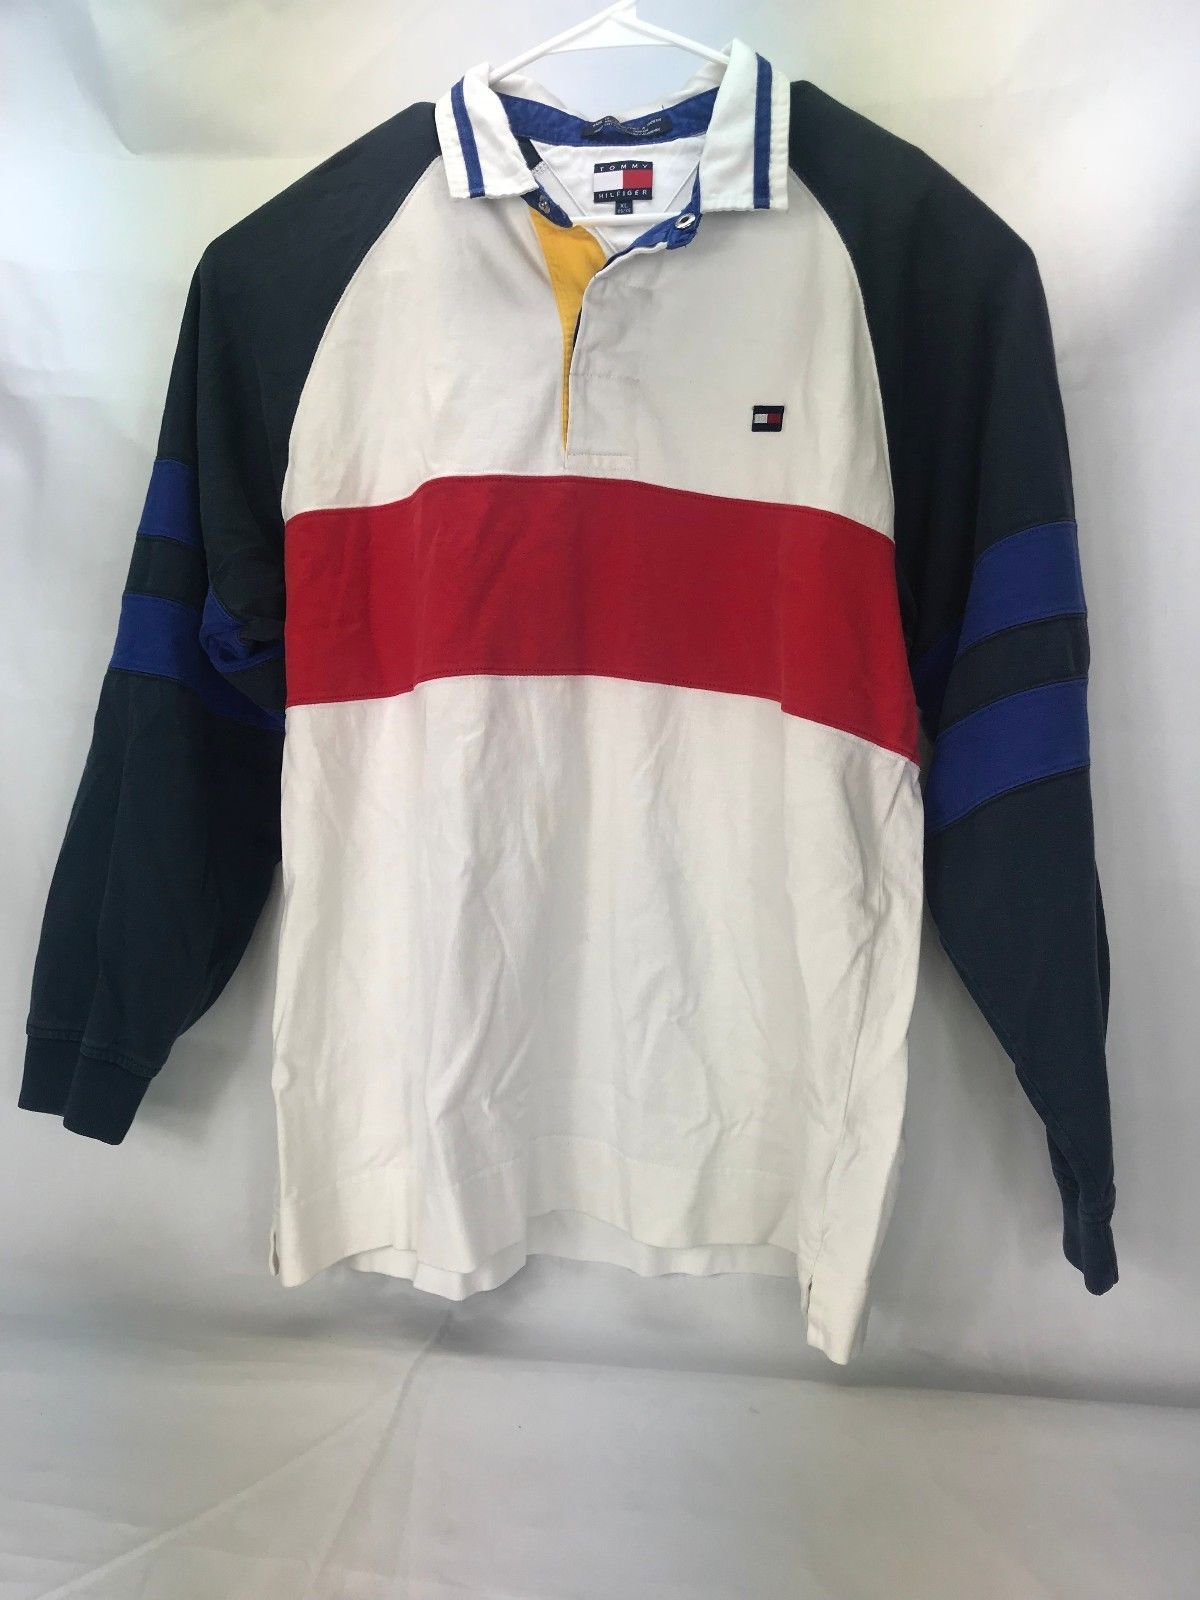 4e06e28dde3 Tommy Hilfiger Mens XL Long Sleeve Polo Shirt Red White Blue Striped with  Logo | eBay